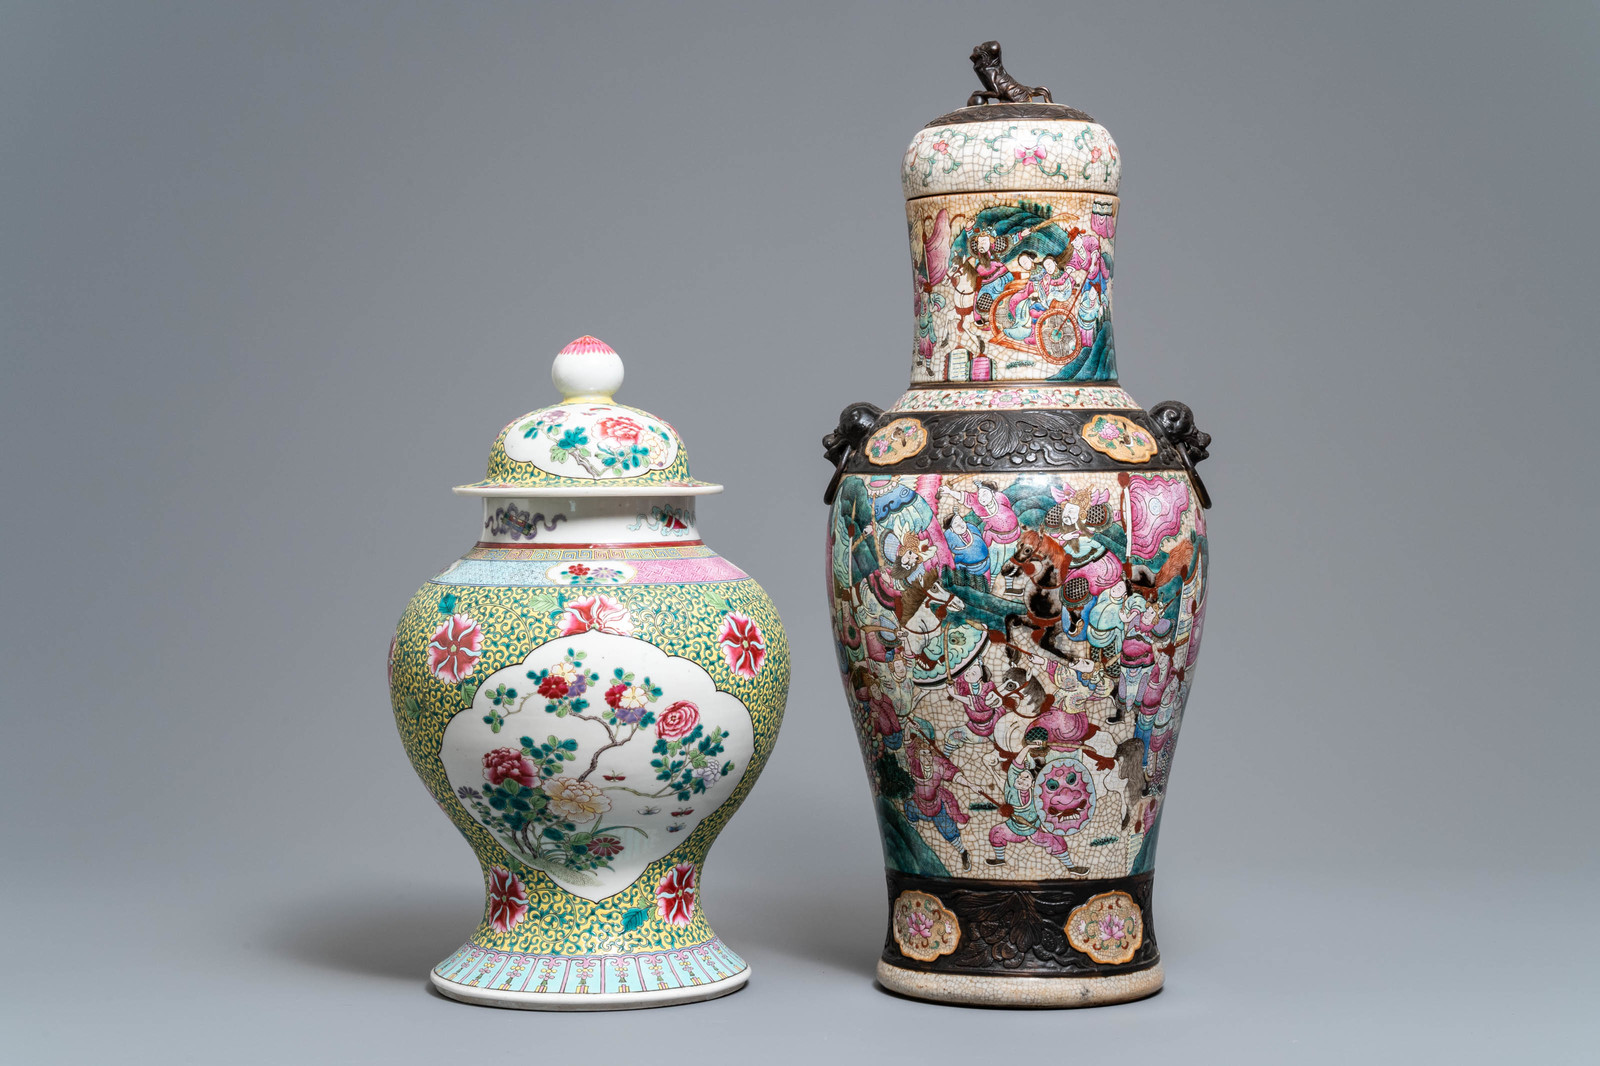 Lot 58 - Two Chinese famille rose vases and covers, 19/20th C.